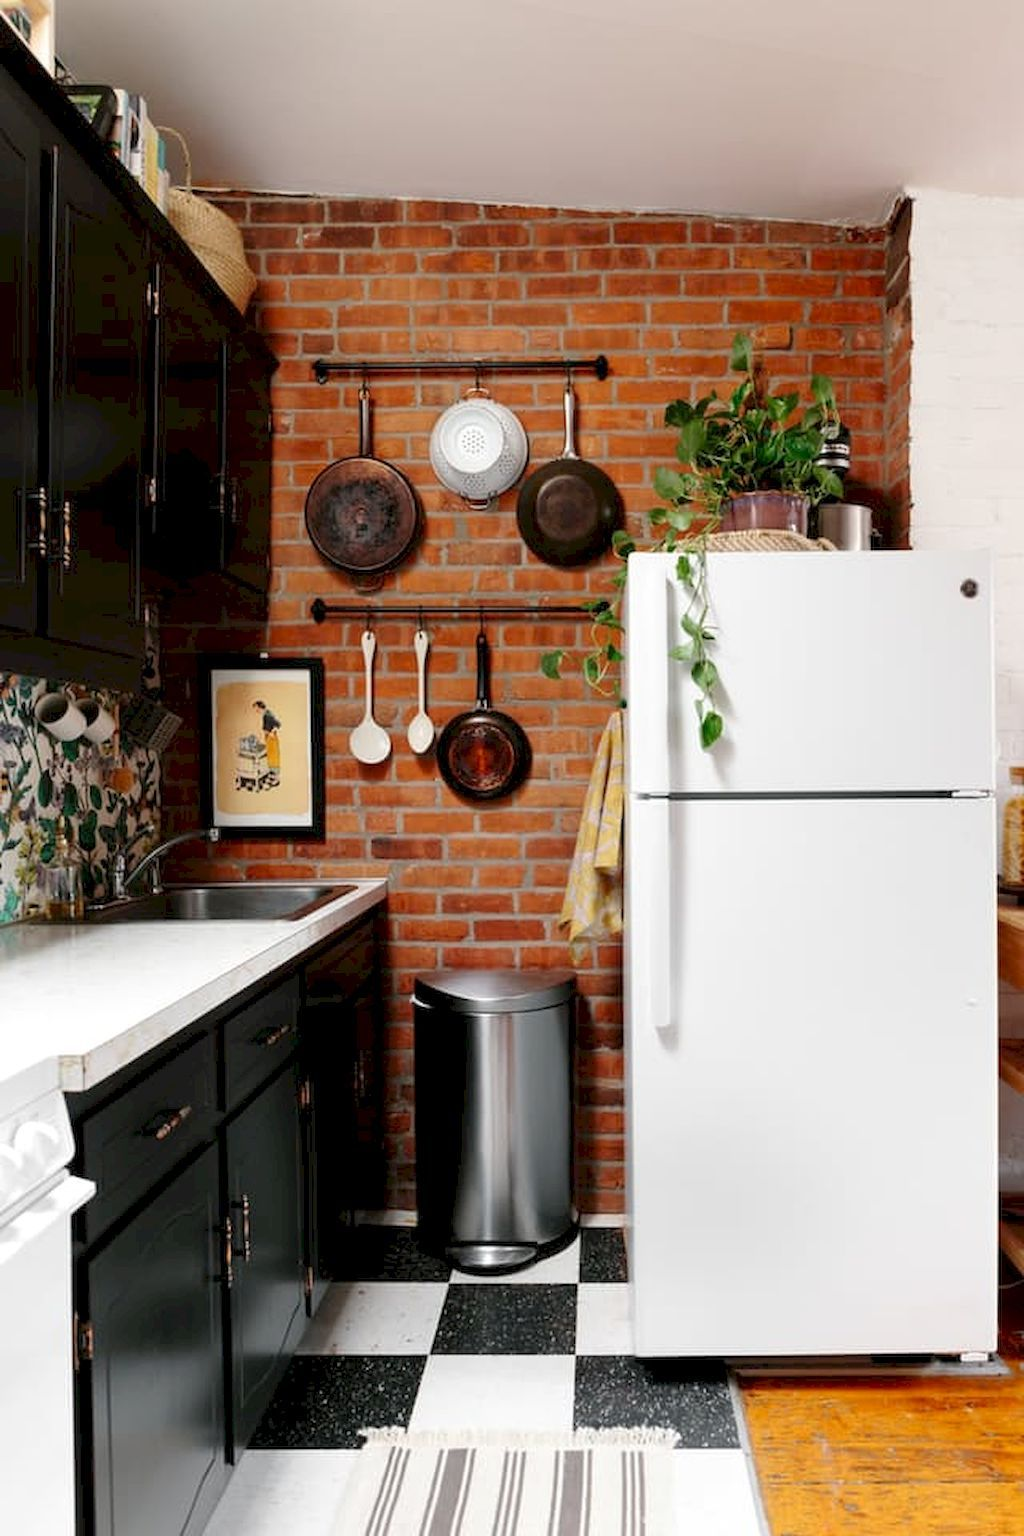 65 Smart And Creative Small Apartment Decorating Ideas On A Budget Homeastern Com Kitchen Remodel Small Kitchen Decor Apartment Small Apartment Kitchen Decor